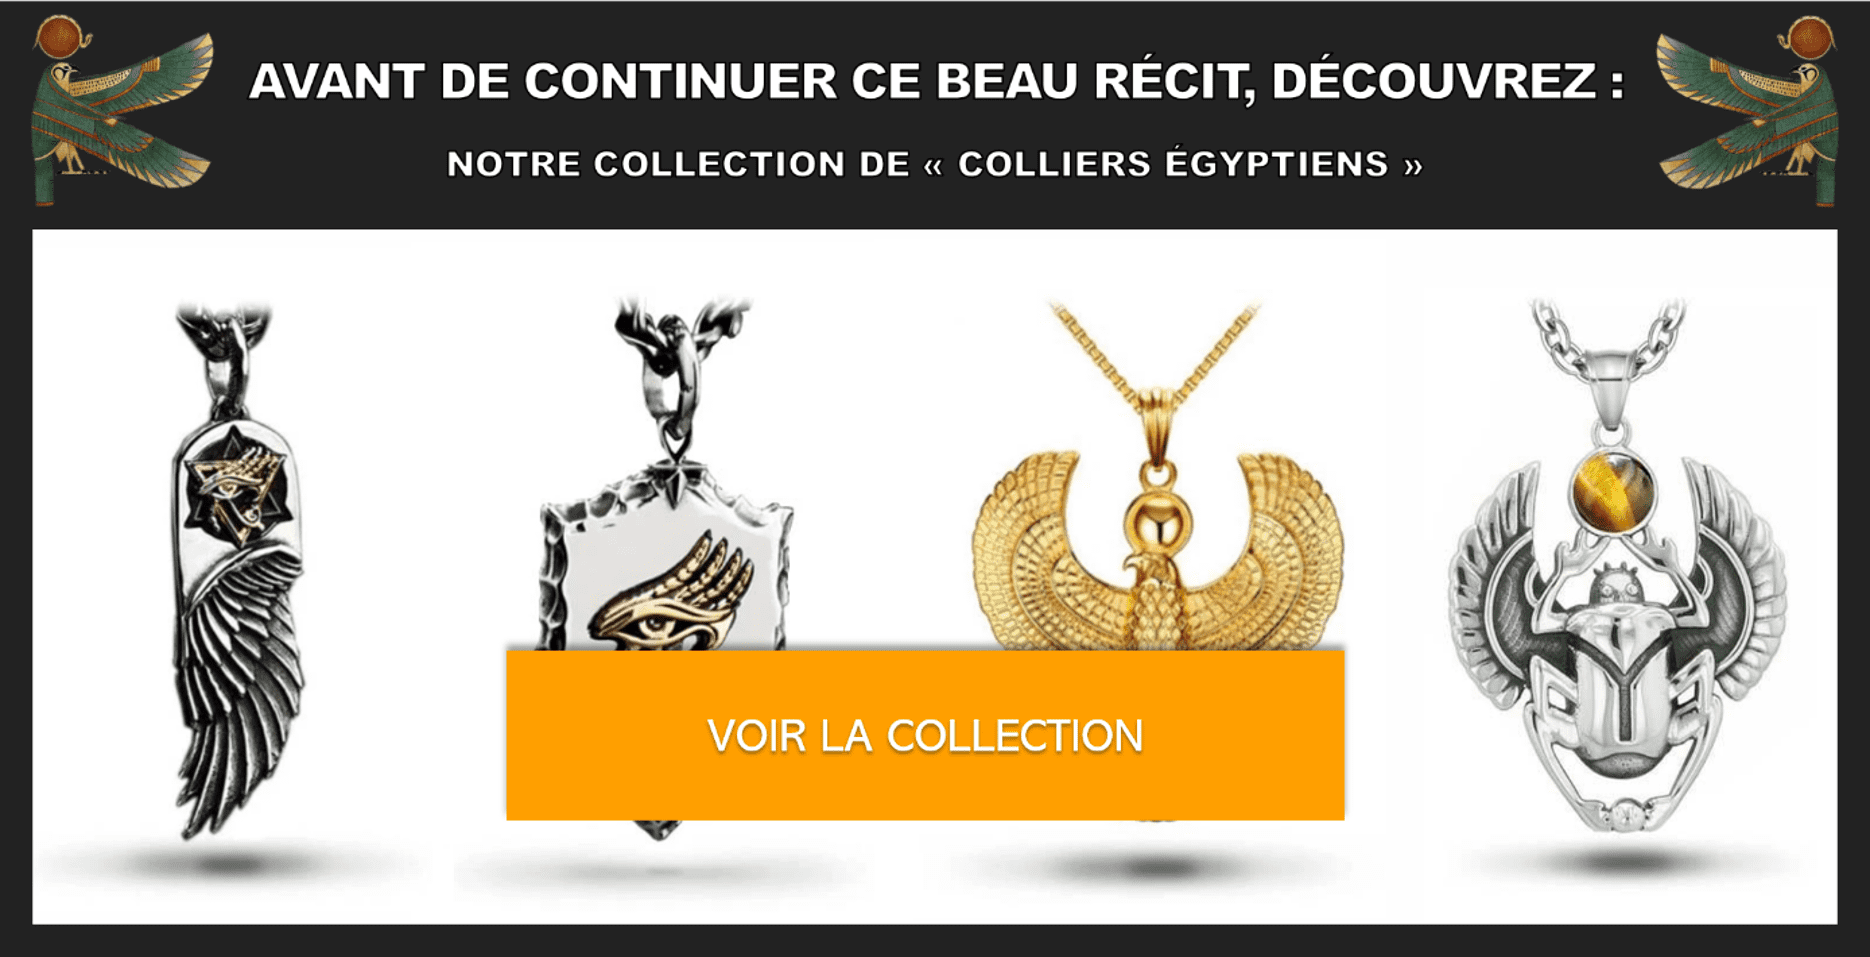 Colliers égyptiens de l'Égypte antique